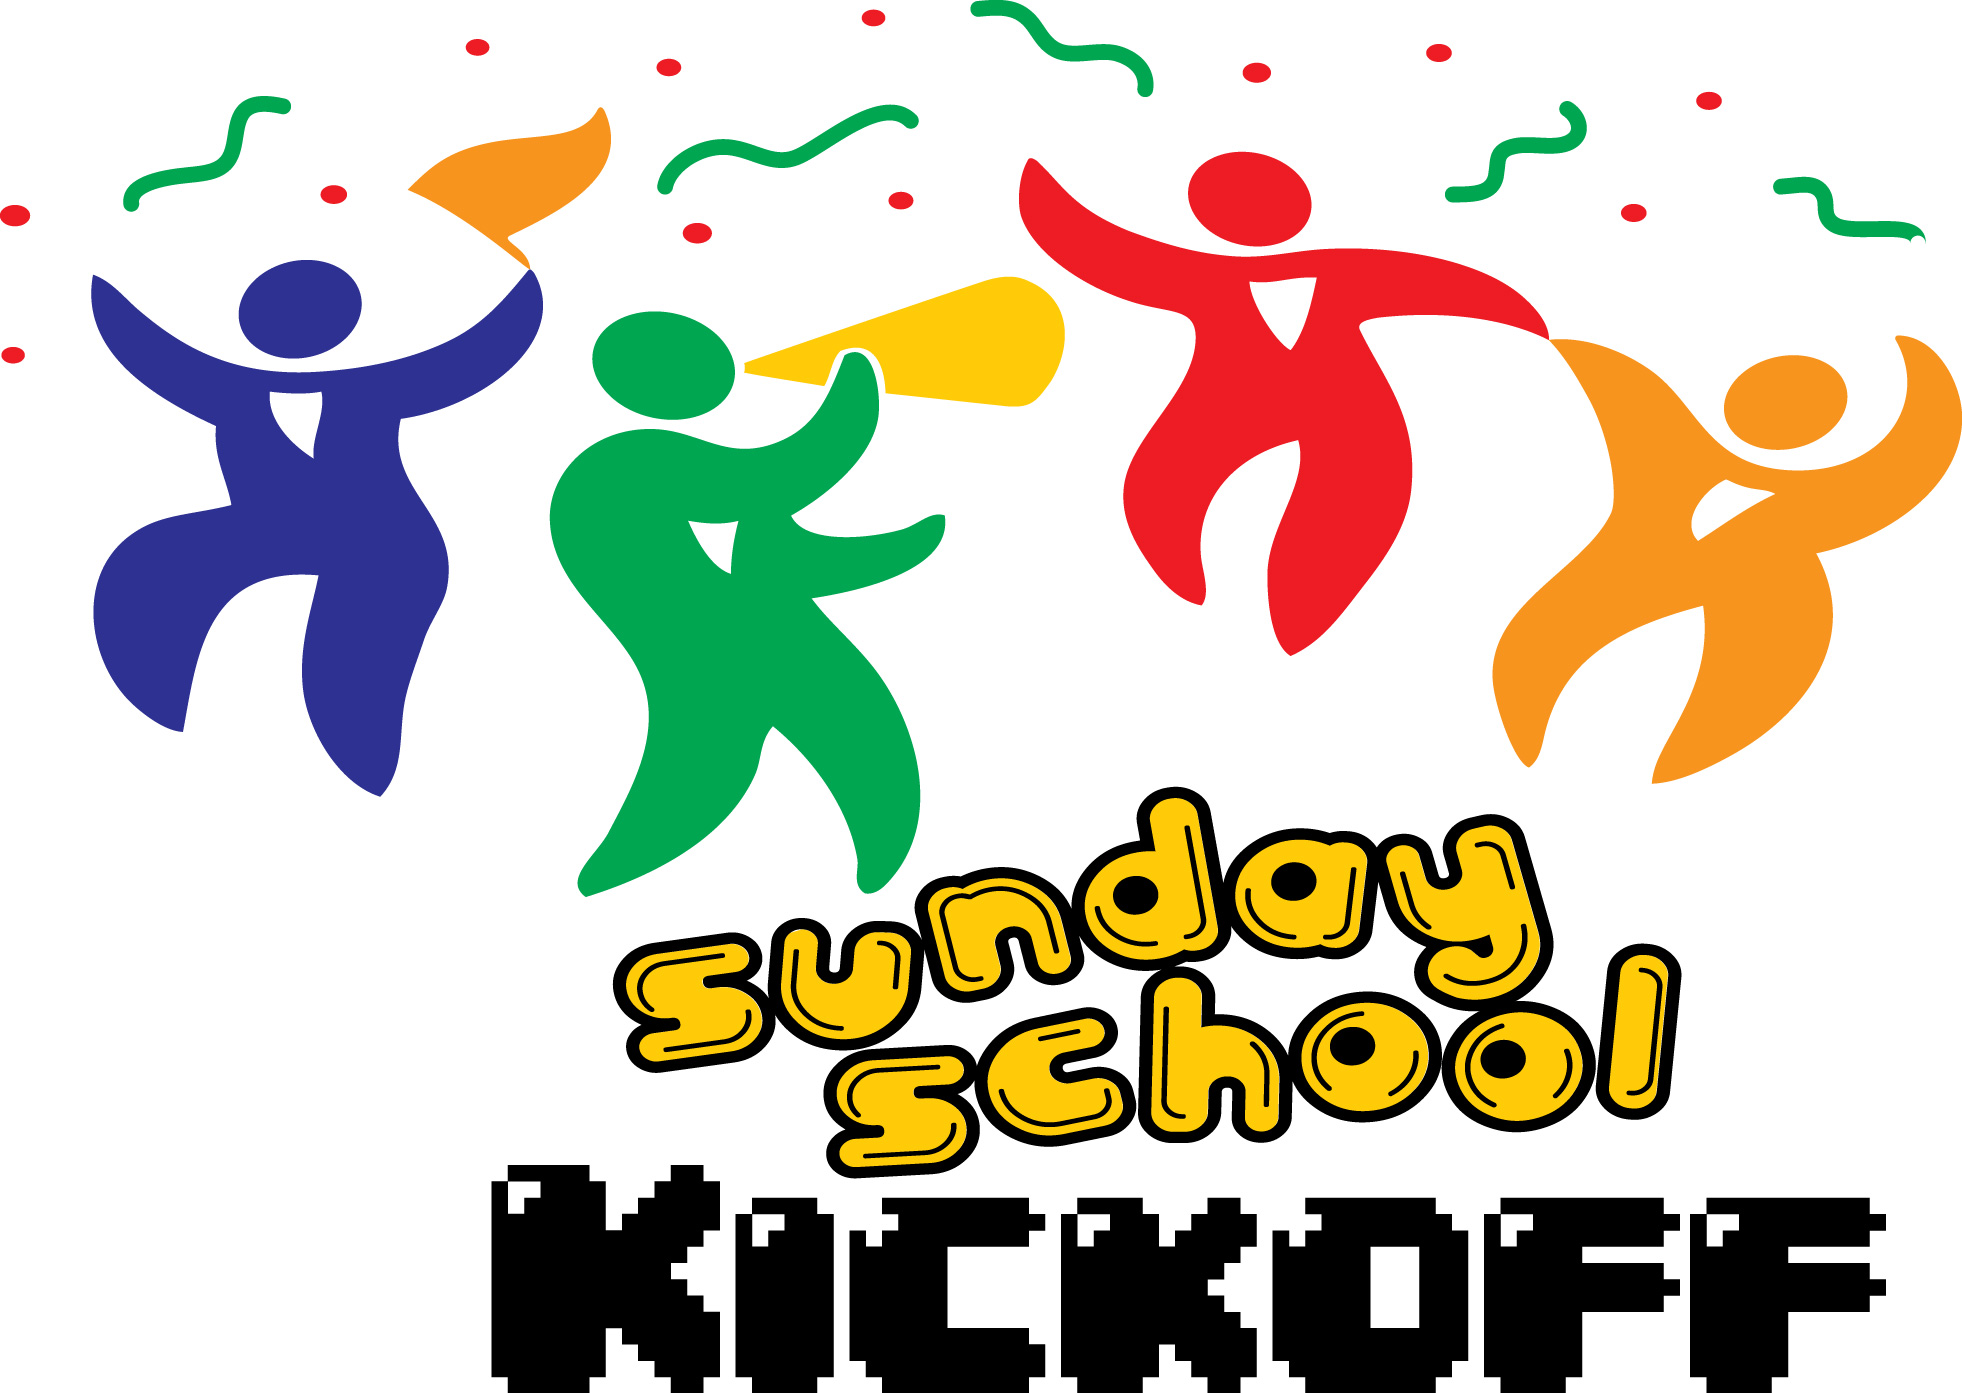 Clip Art Sunday School Clip Art sunday school promotion clipart kid best